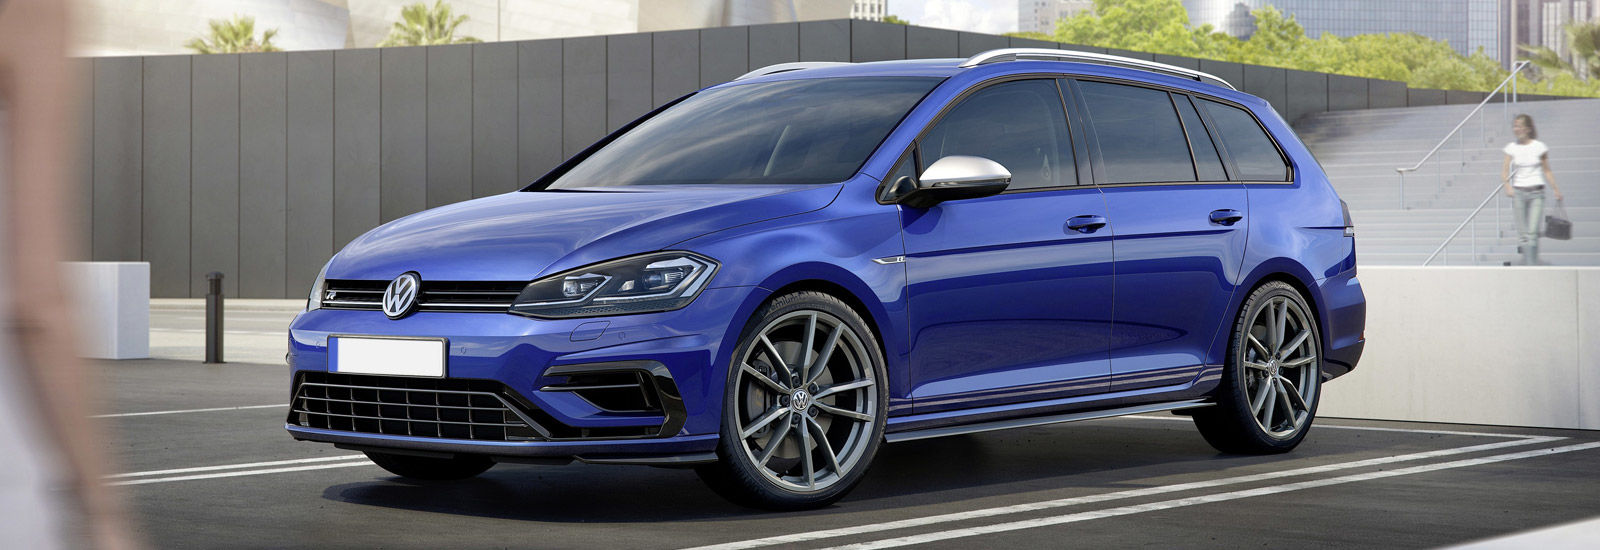 2018 Honda Accord Uk >> 2018 Vw Golf R Release Date Price Specs | 2017 - 2018 Best Cars Reviews